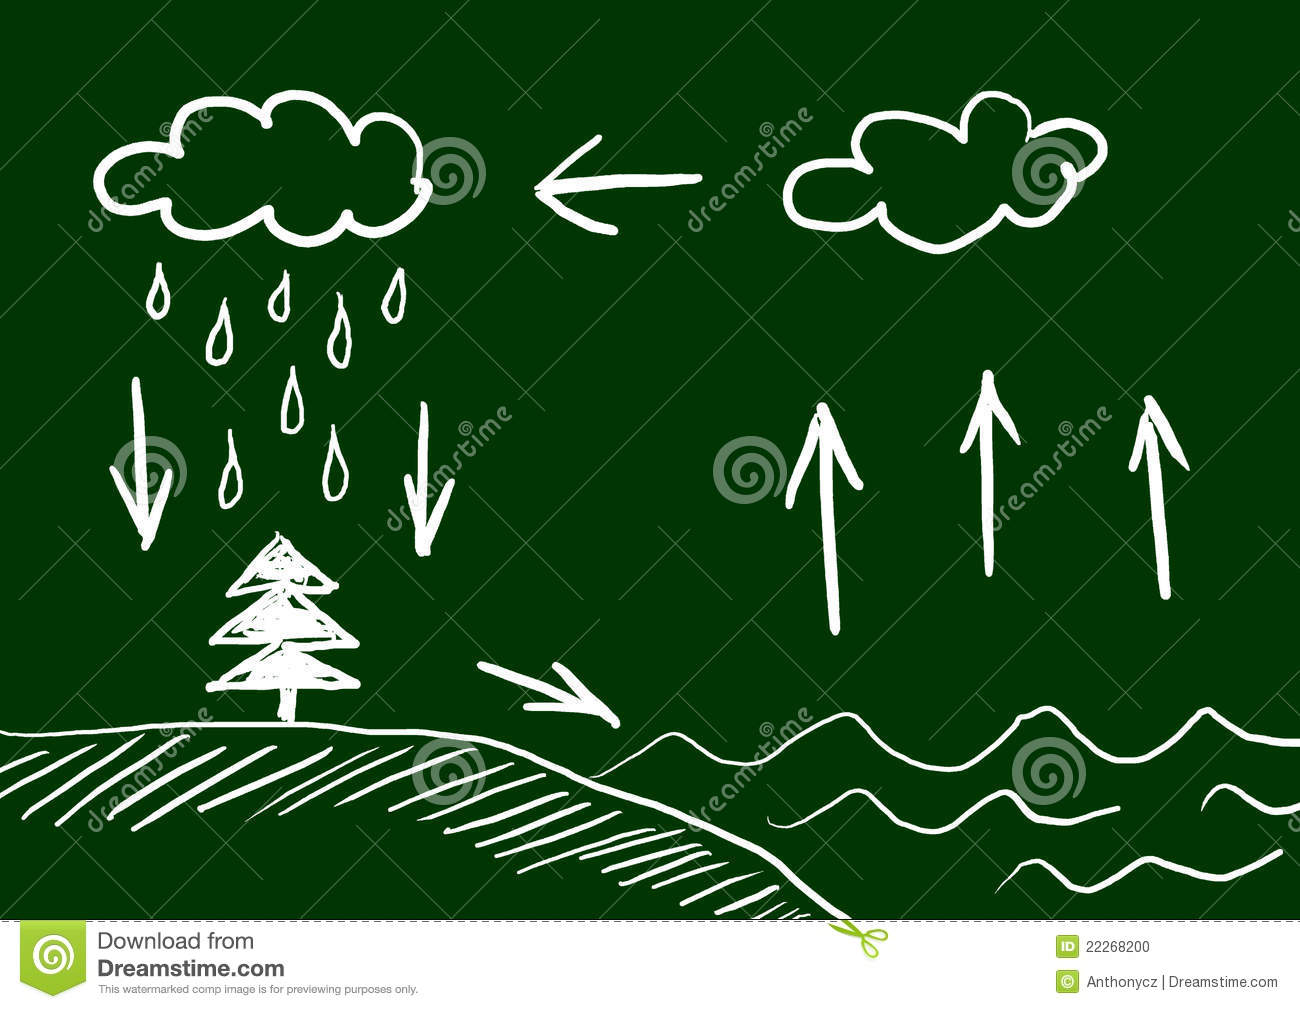 Water Cycle Stock Photo - Image: 22268200